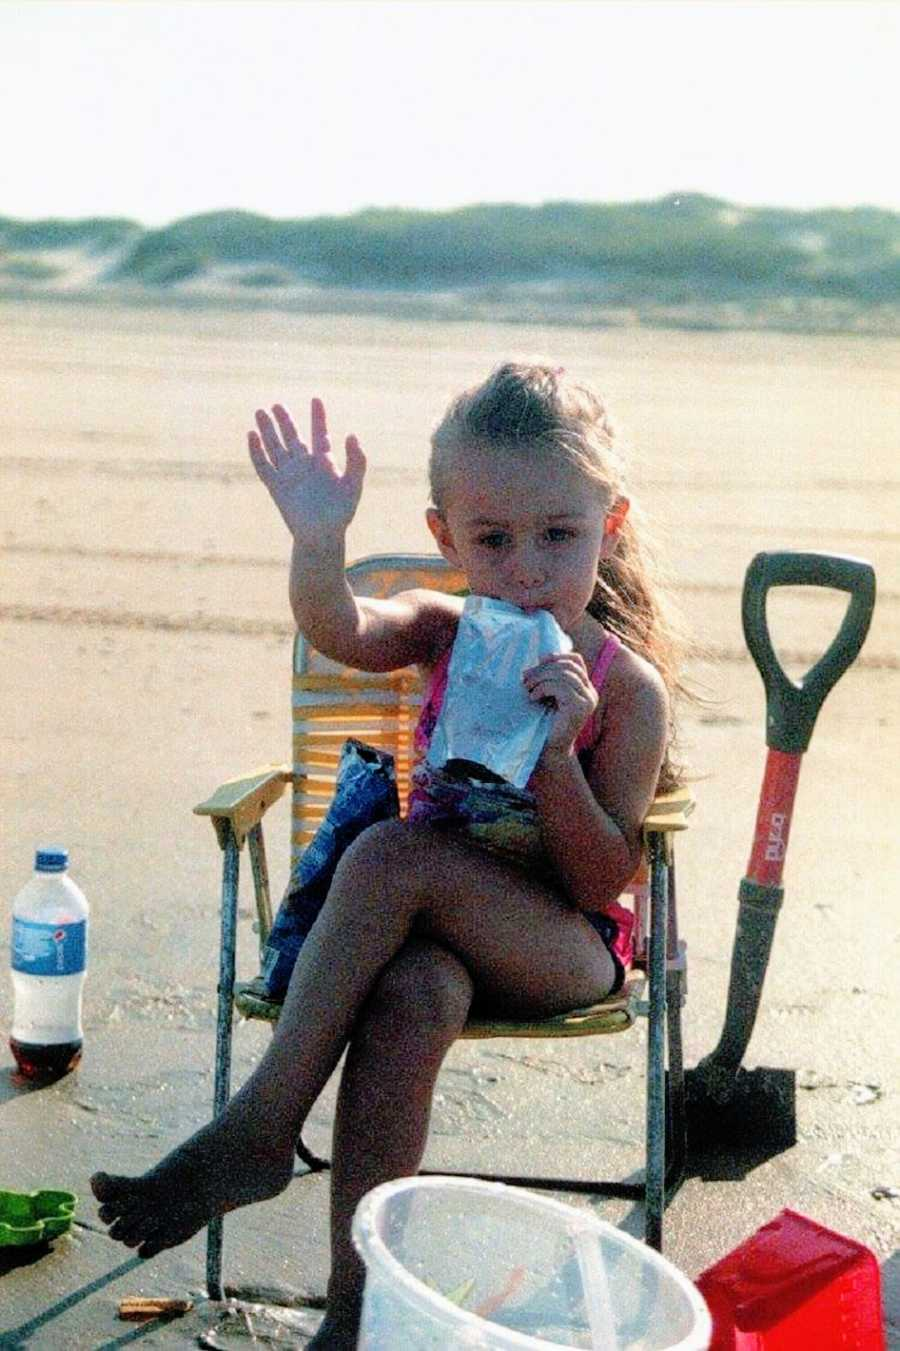 A little girl sits in a lawn chair sipping a juice pouch